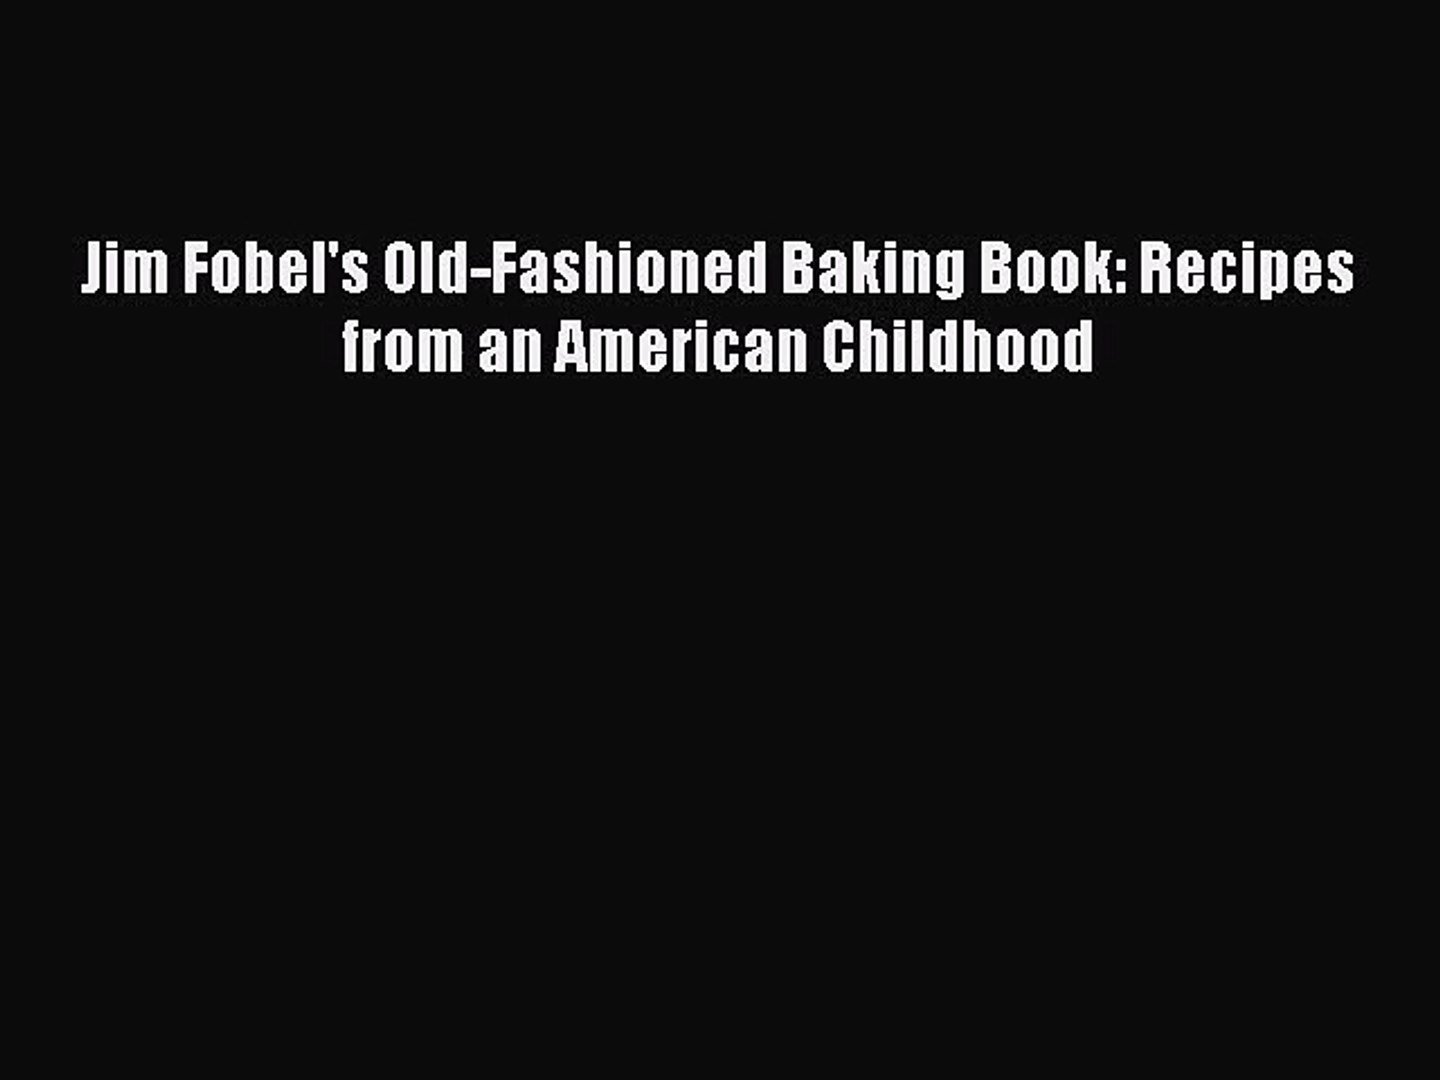 Jim Fobel's Old-Fashioned Baking Book: Recipes from an American Childhood [PDF Download] Jim